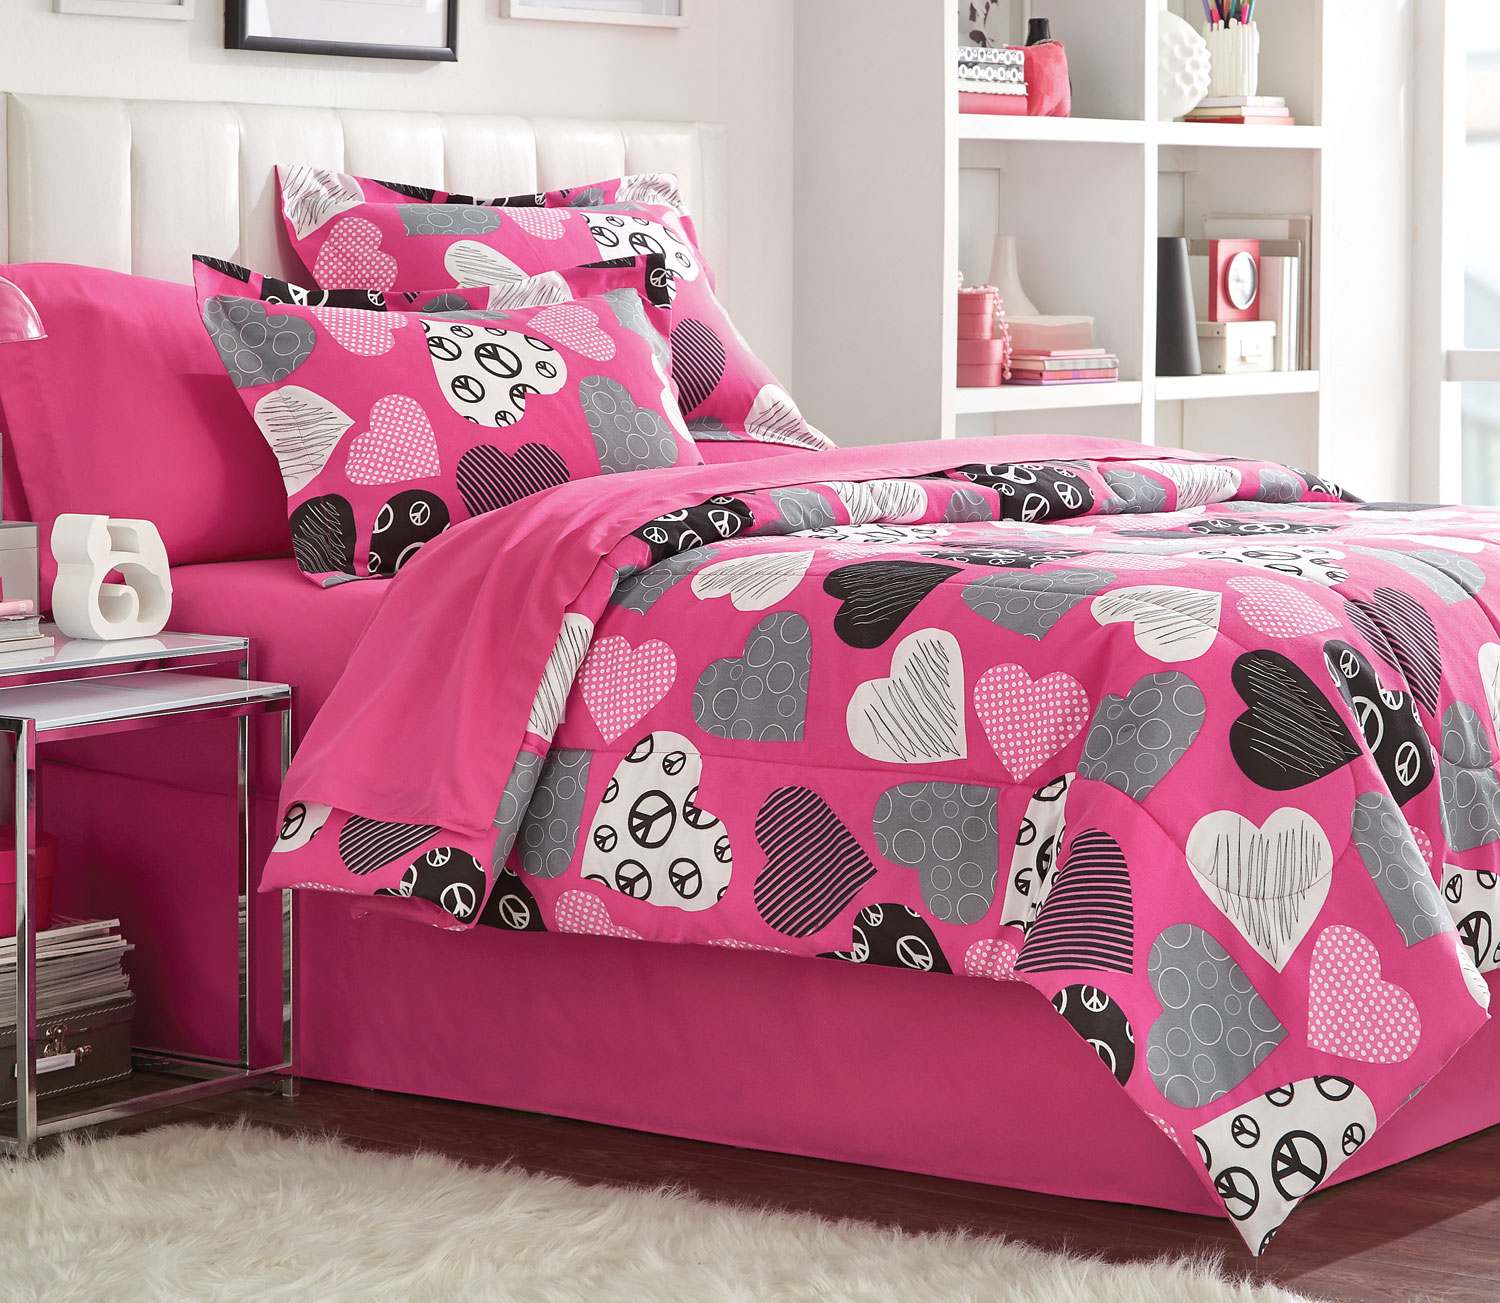 Mattresses and Bedding - Hearts 8-Piece Full Comforter Set